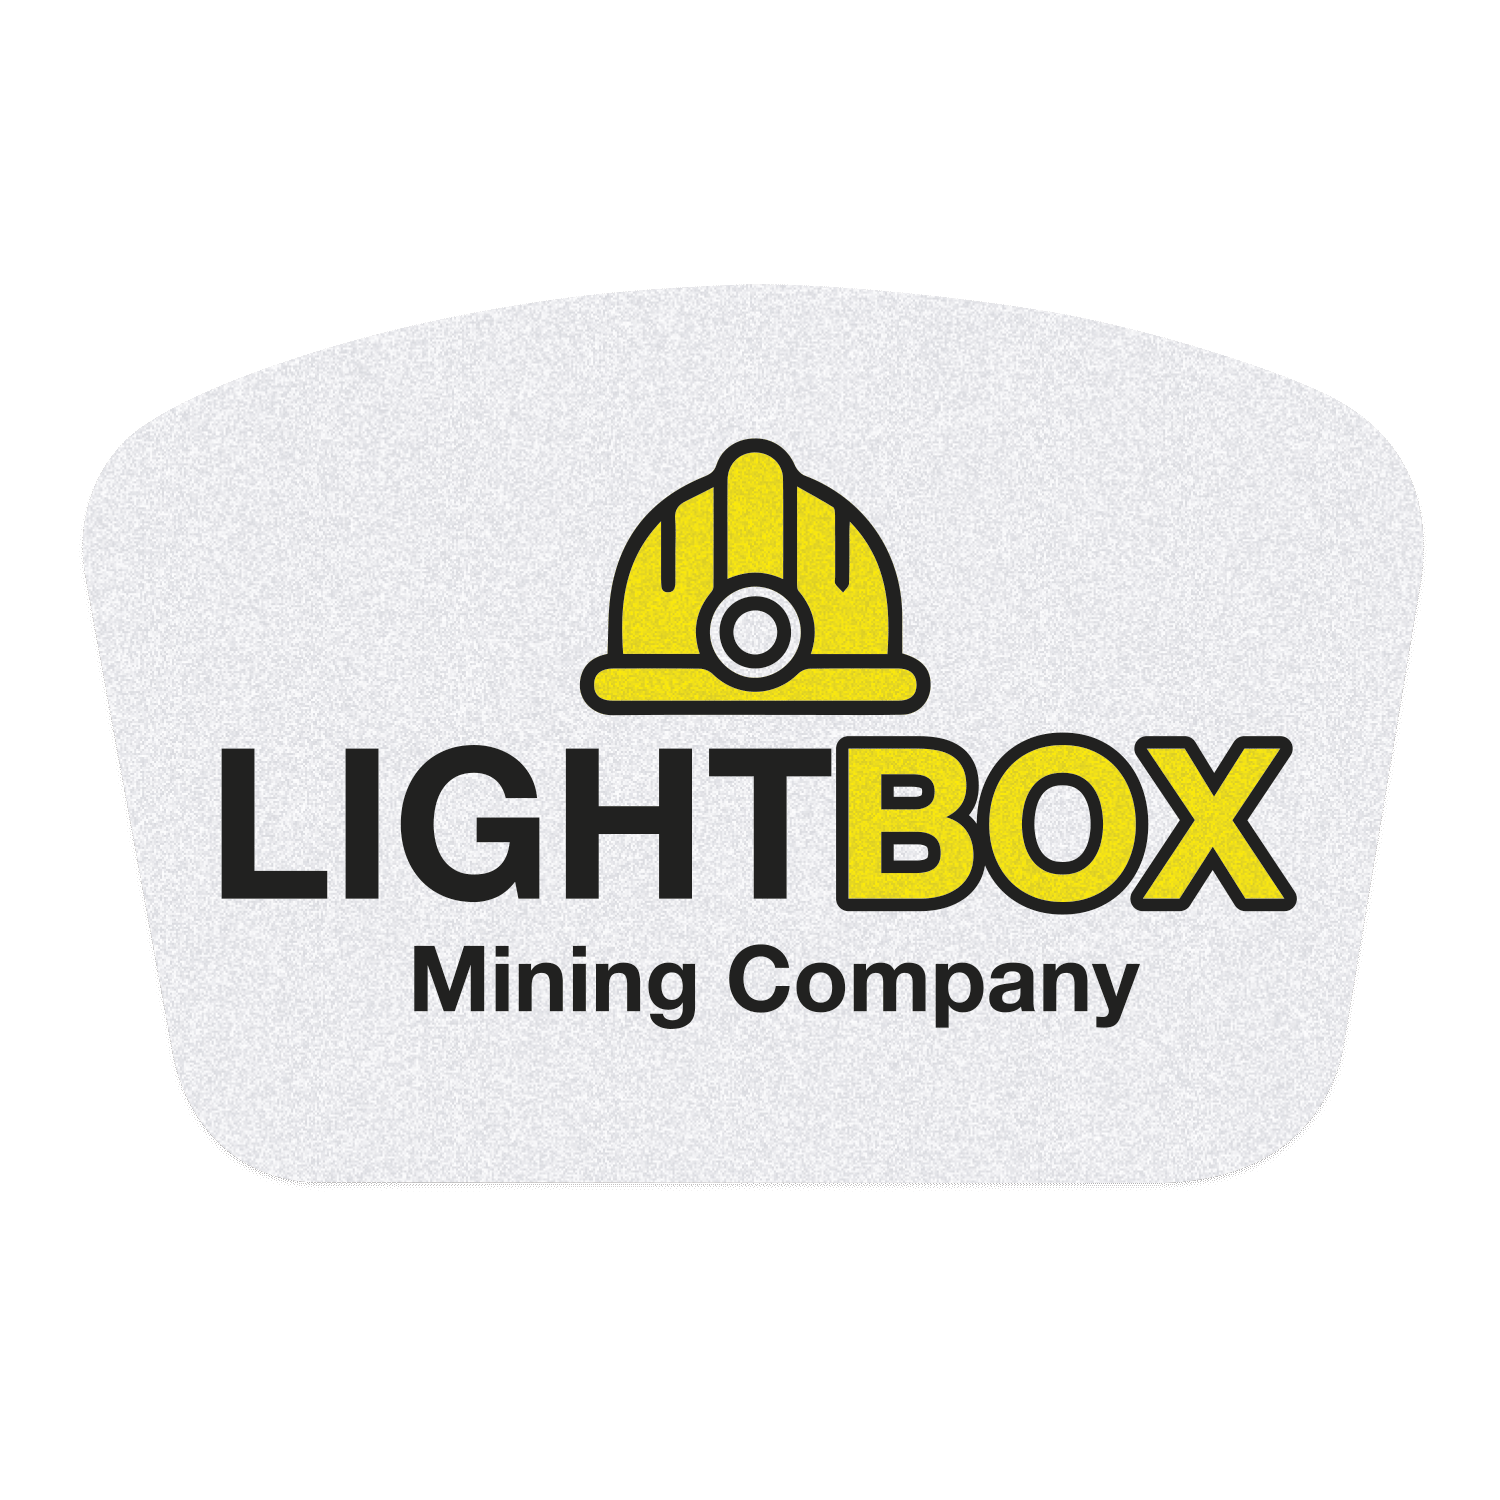 https://www.sswprinting.com/images/products_gallery_images/13404_Lightbox-mine_hi-res.png